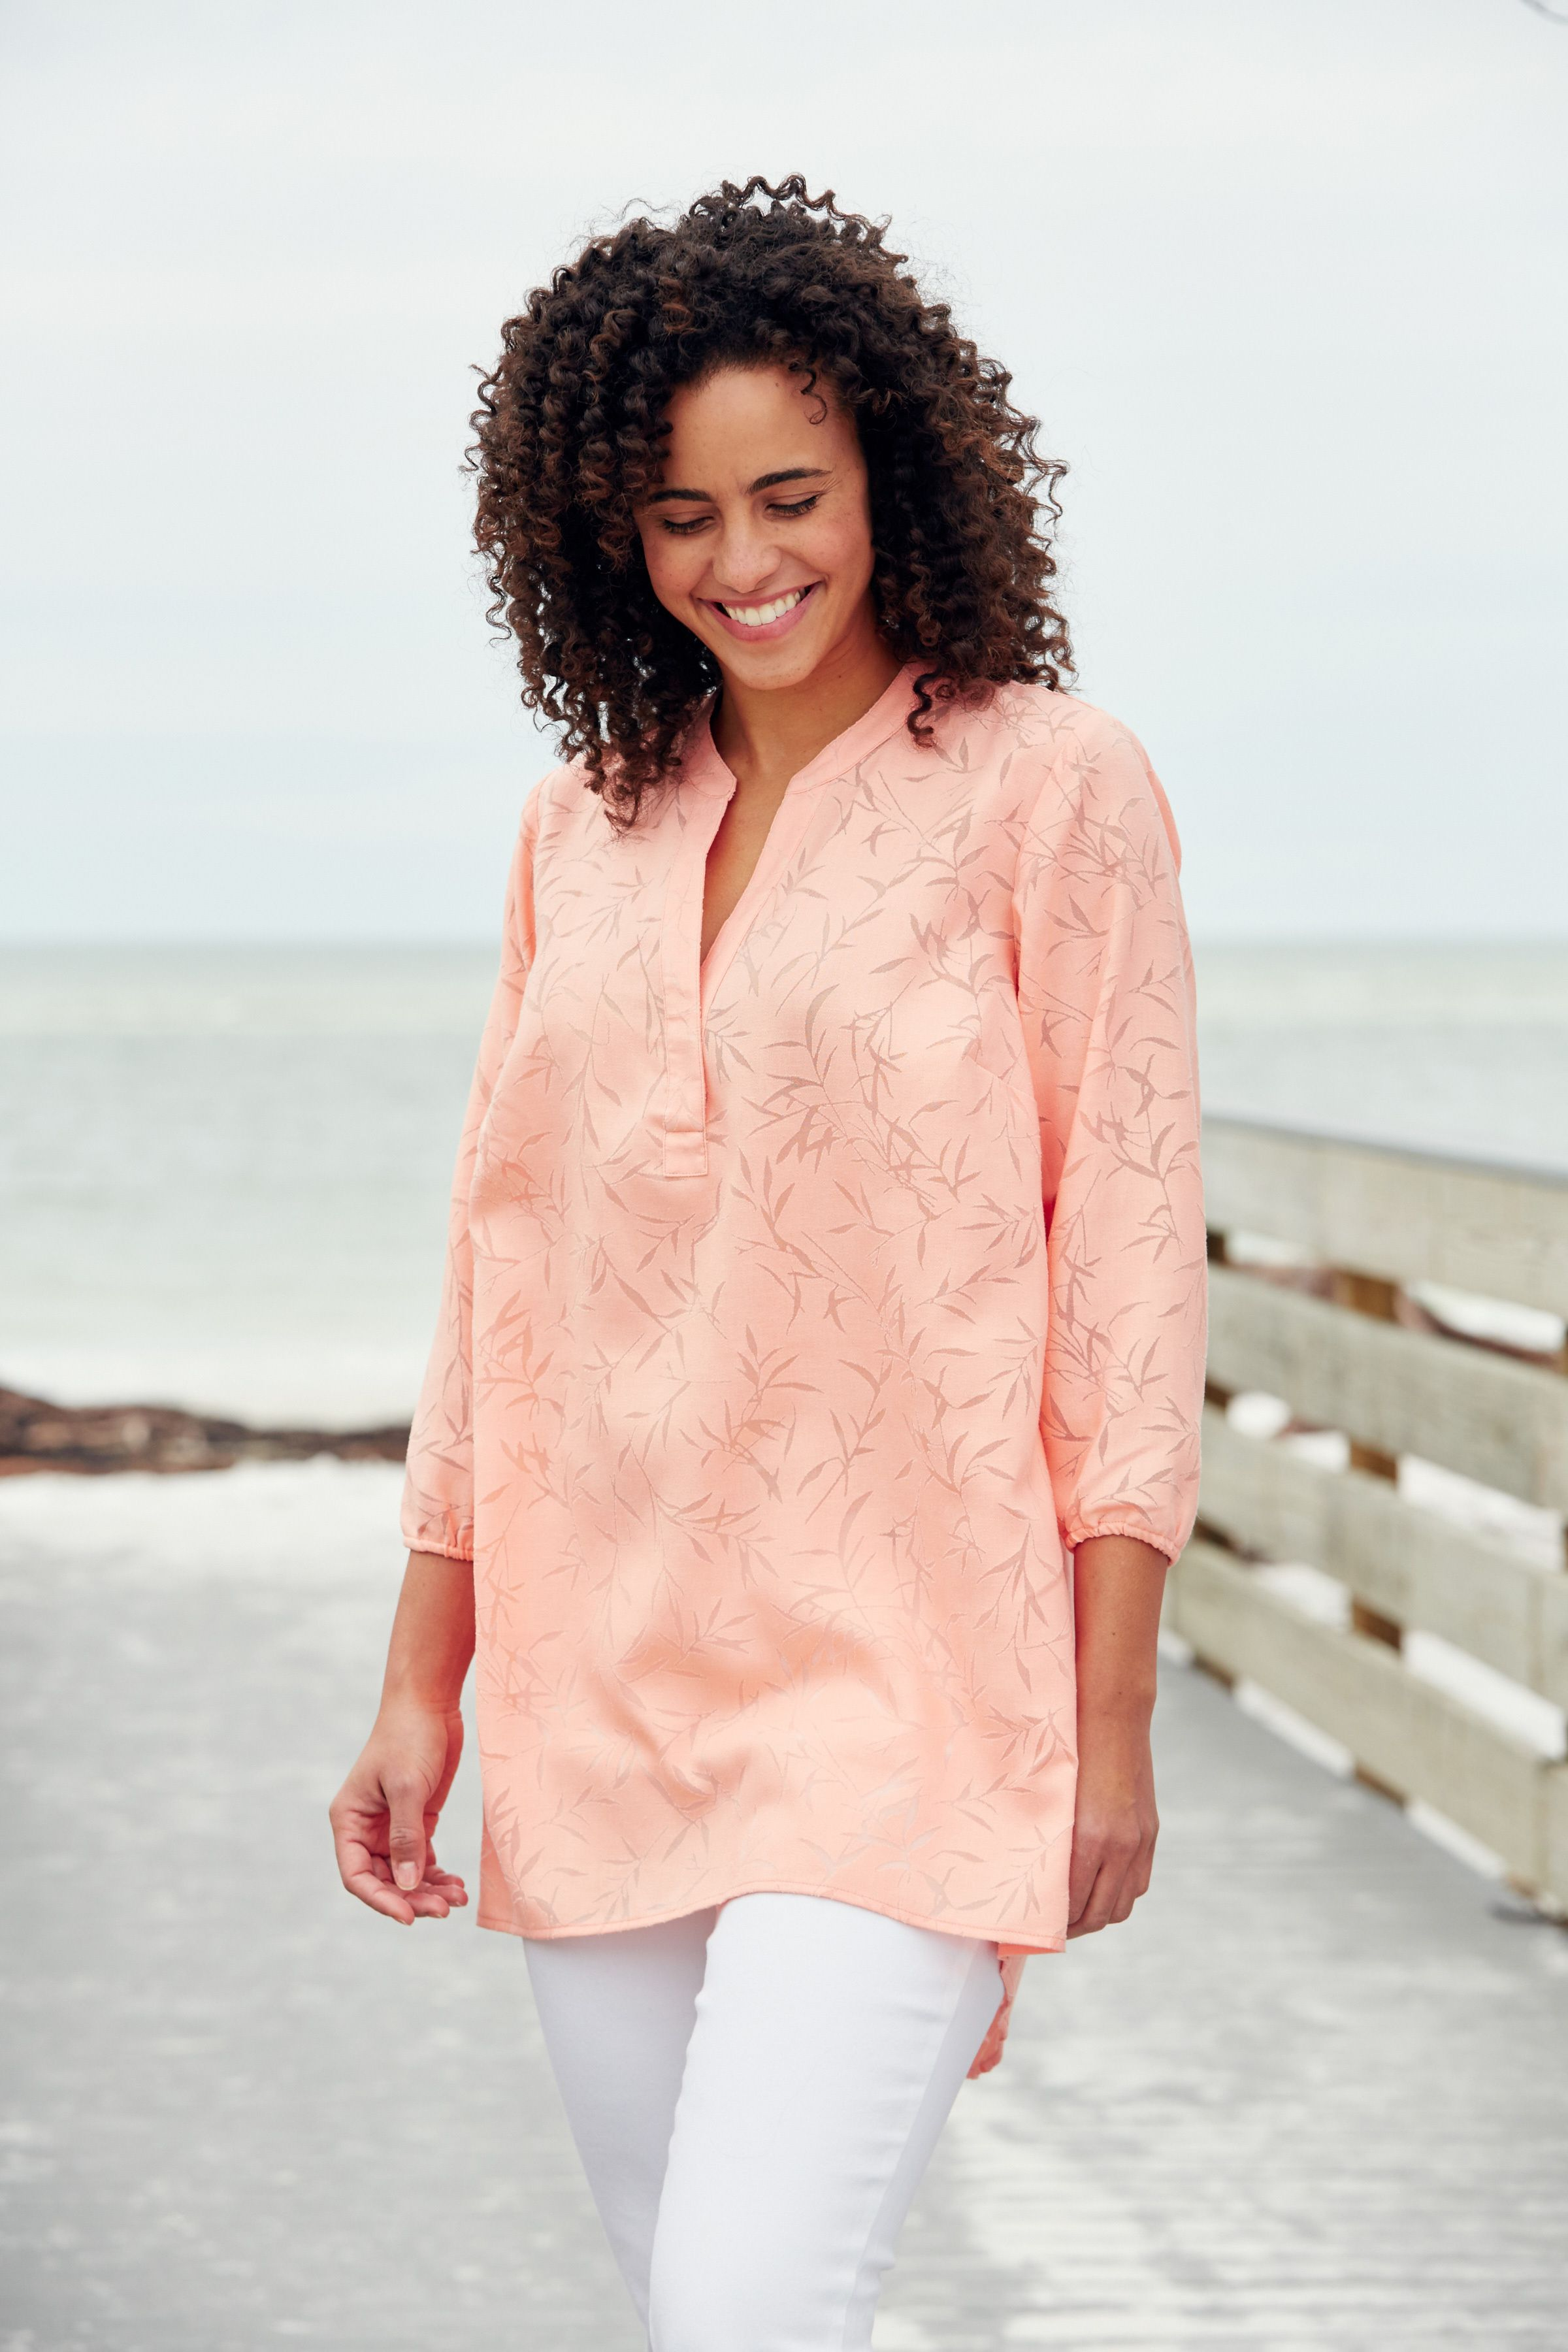 Light linen for hot summer days shore thing plus size fashion from